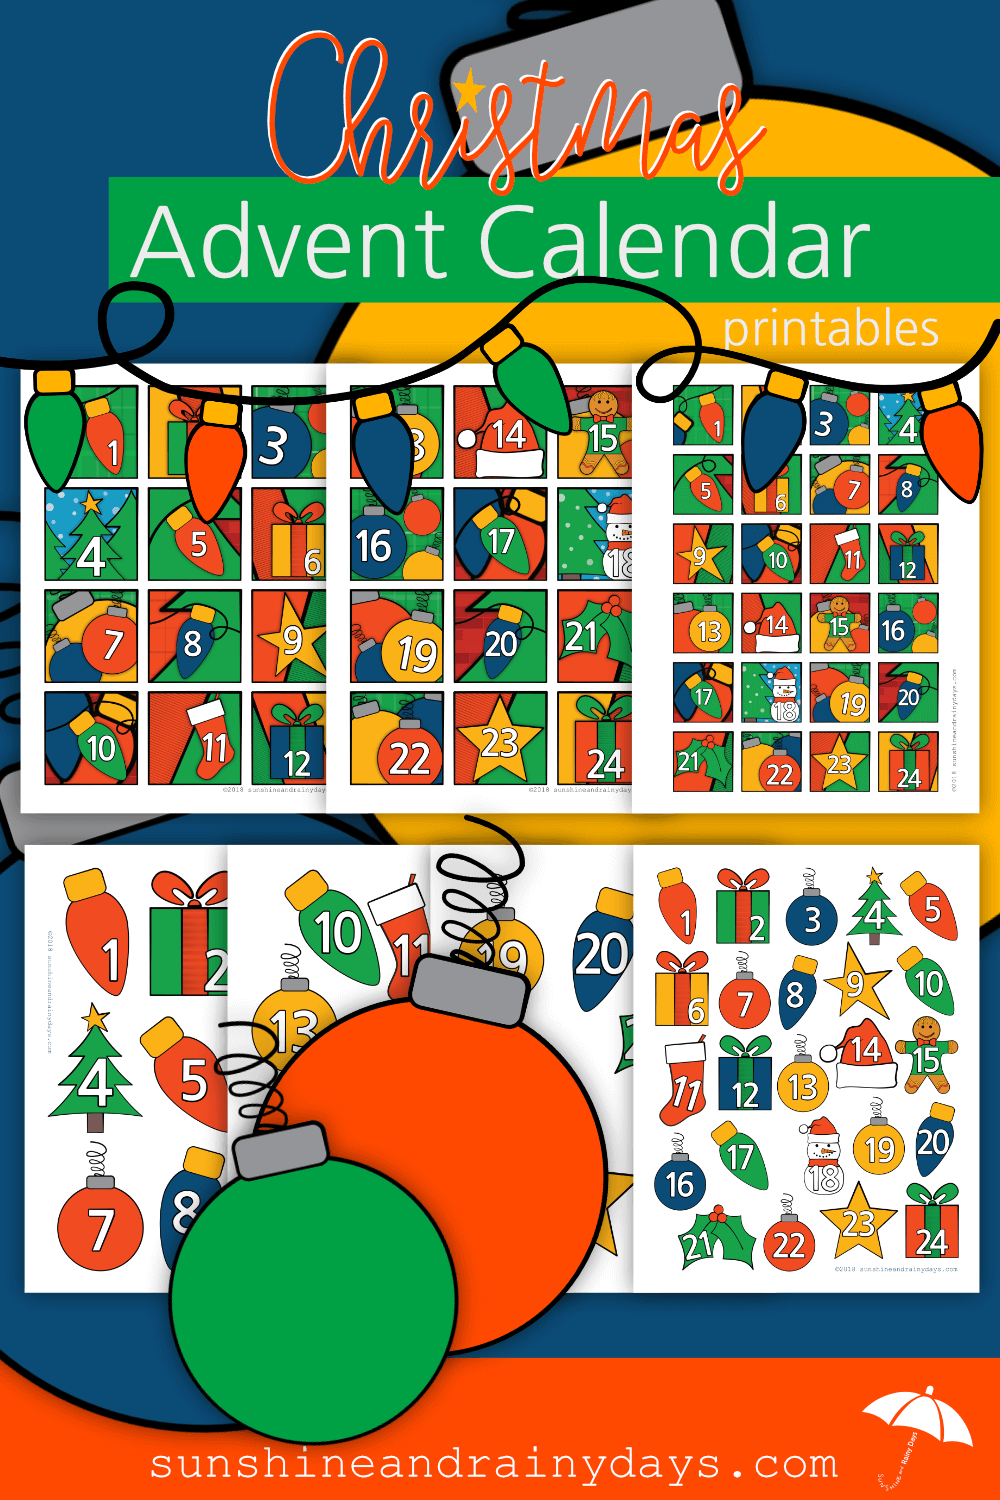 Are you creating your own Advent Calendars this year? We've got a treat for YOU! Our Christmas Advent Calendar Numbers are here to help you number your gifts in style! These numbers can also be used for your Gift Exchange Games! Advent Calendar | Advent Calendar Ideas | Advent Calendar Printable Numbers | Advent Calendar Numbers | Christmas Advent Calendar | #adventcalendar #printables #SARD